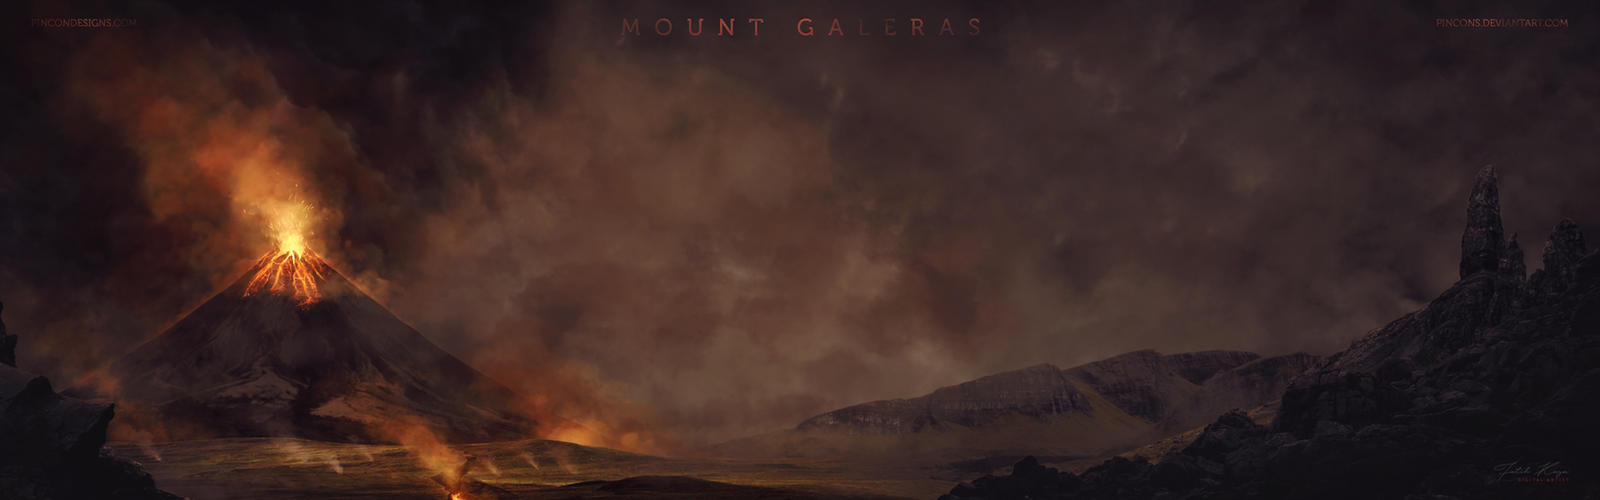 Mount Galeras by Pincons